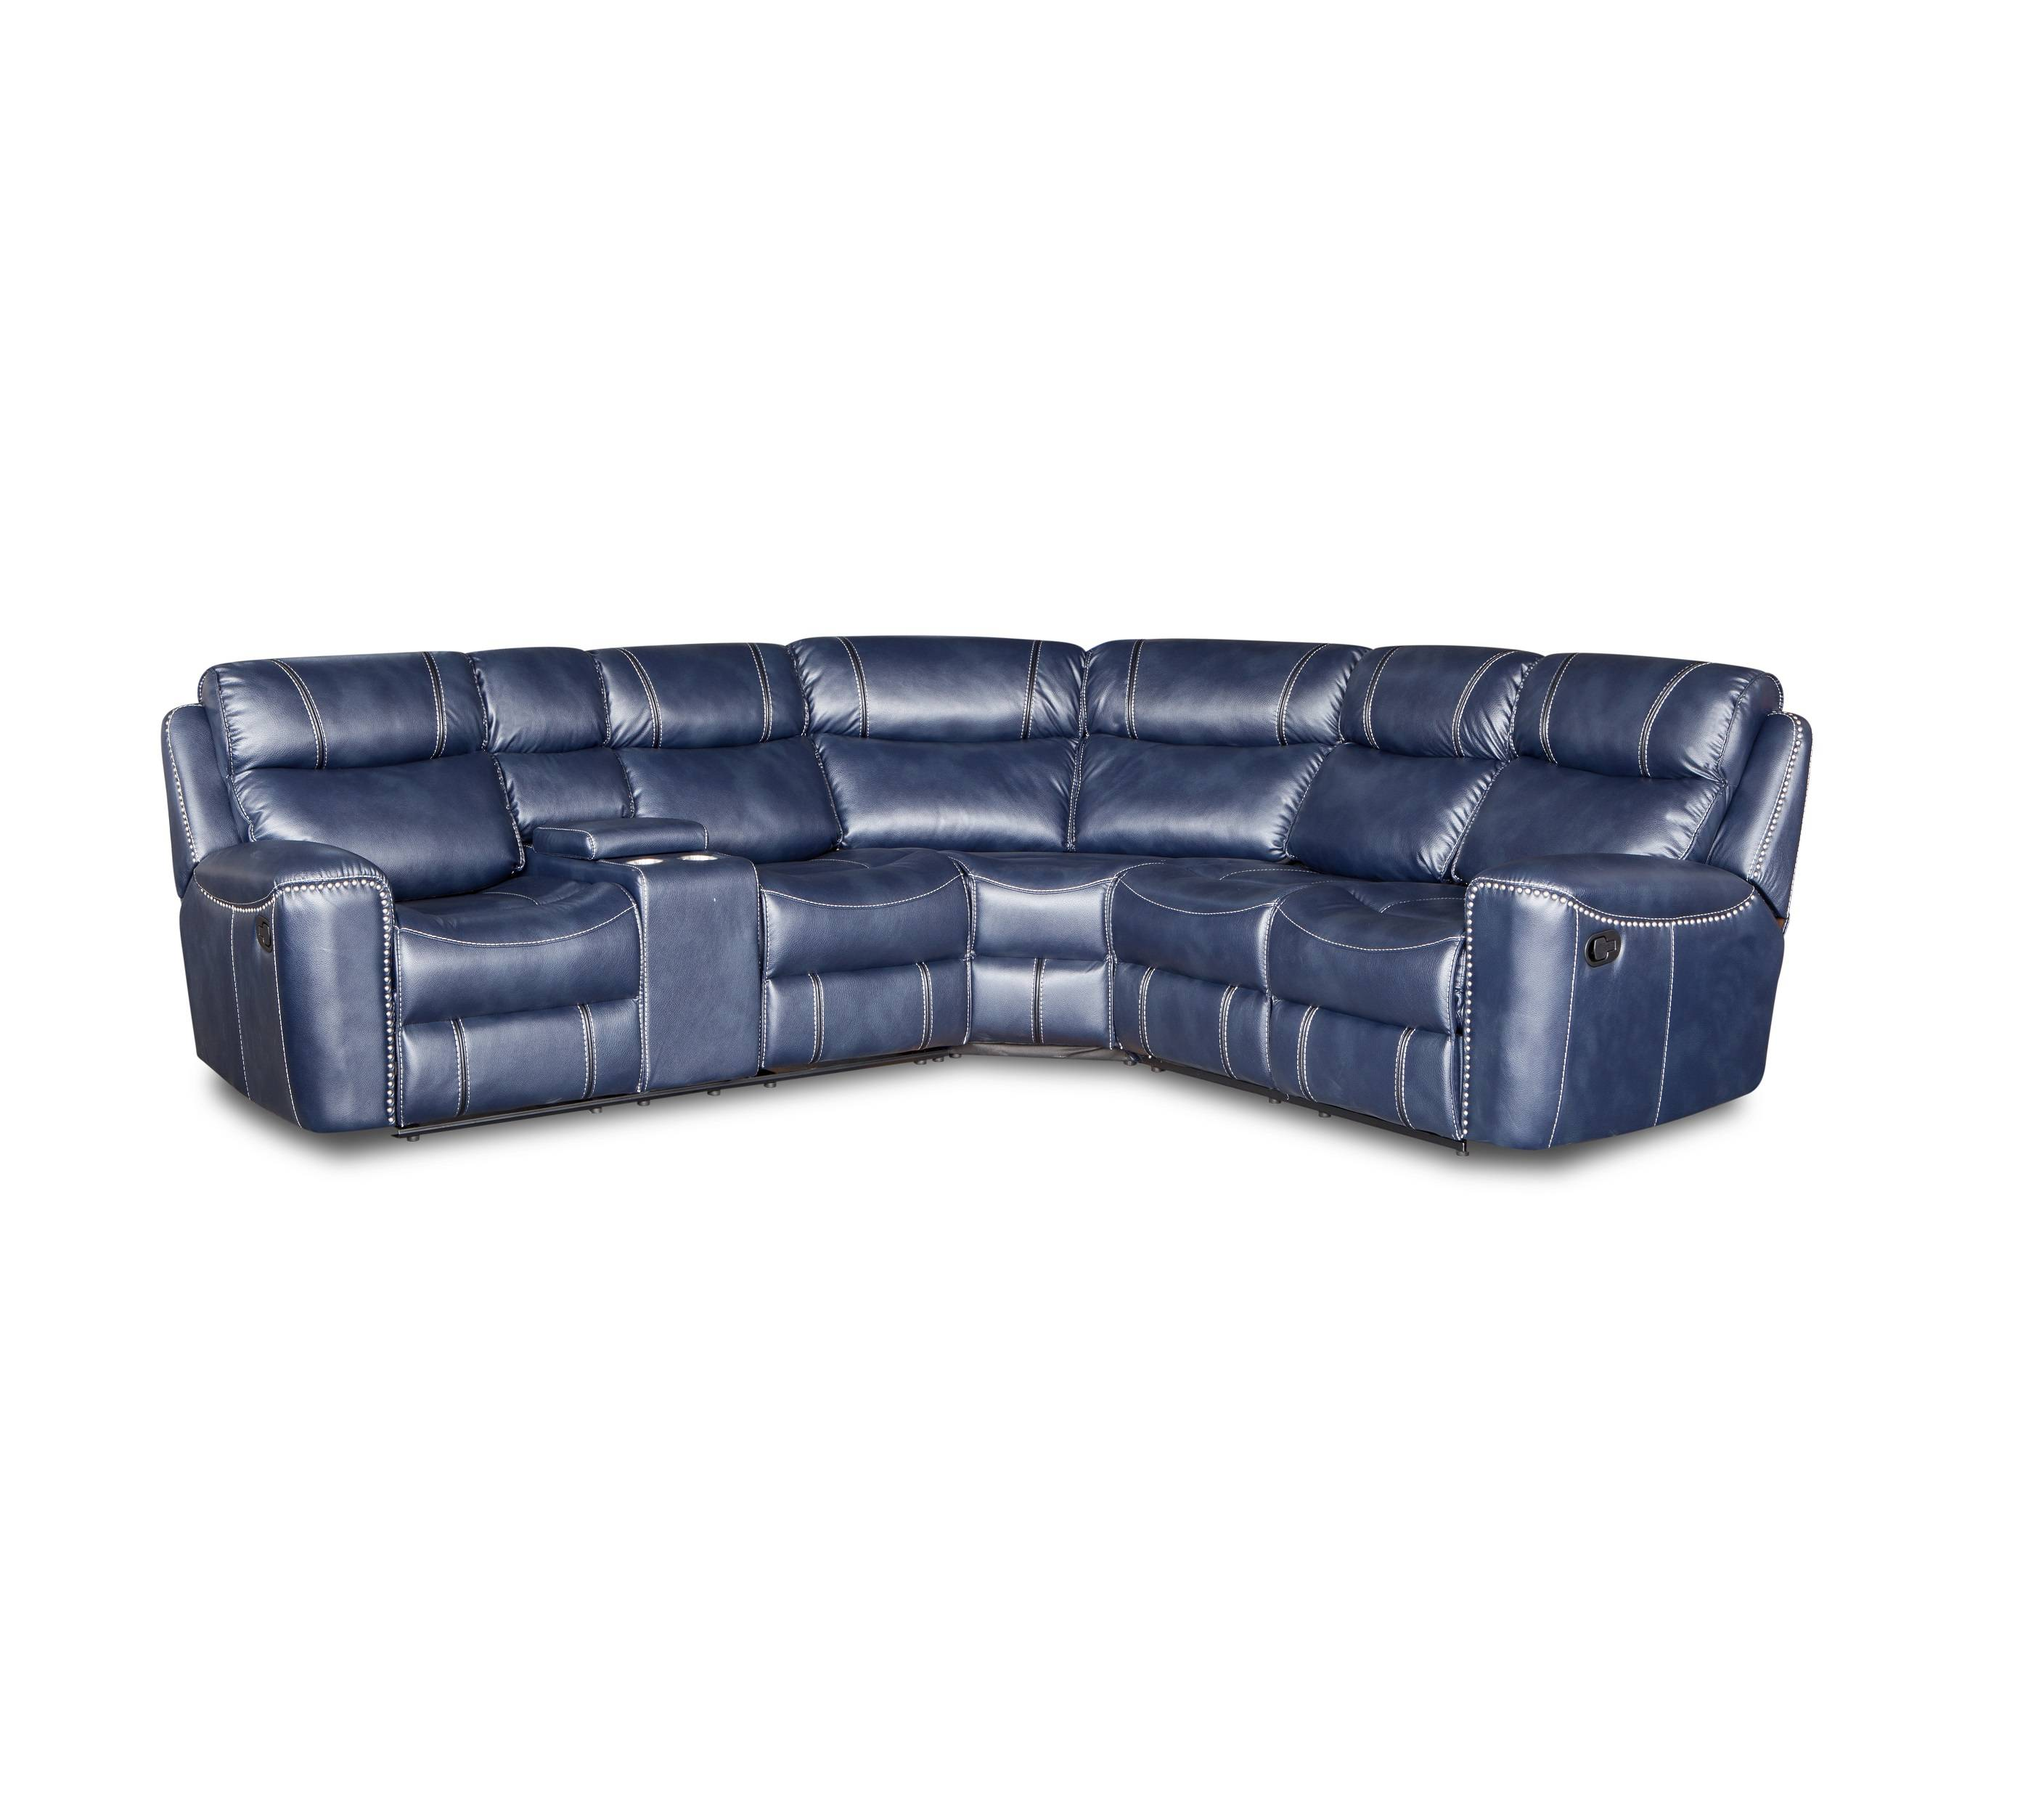 Luxury recliner with cup holder leather u shaped sectional sofa